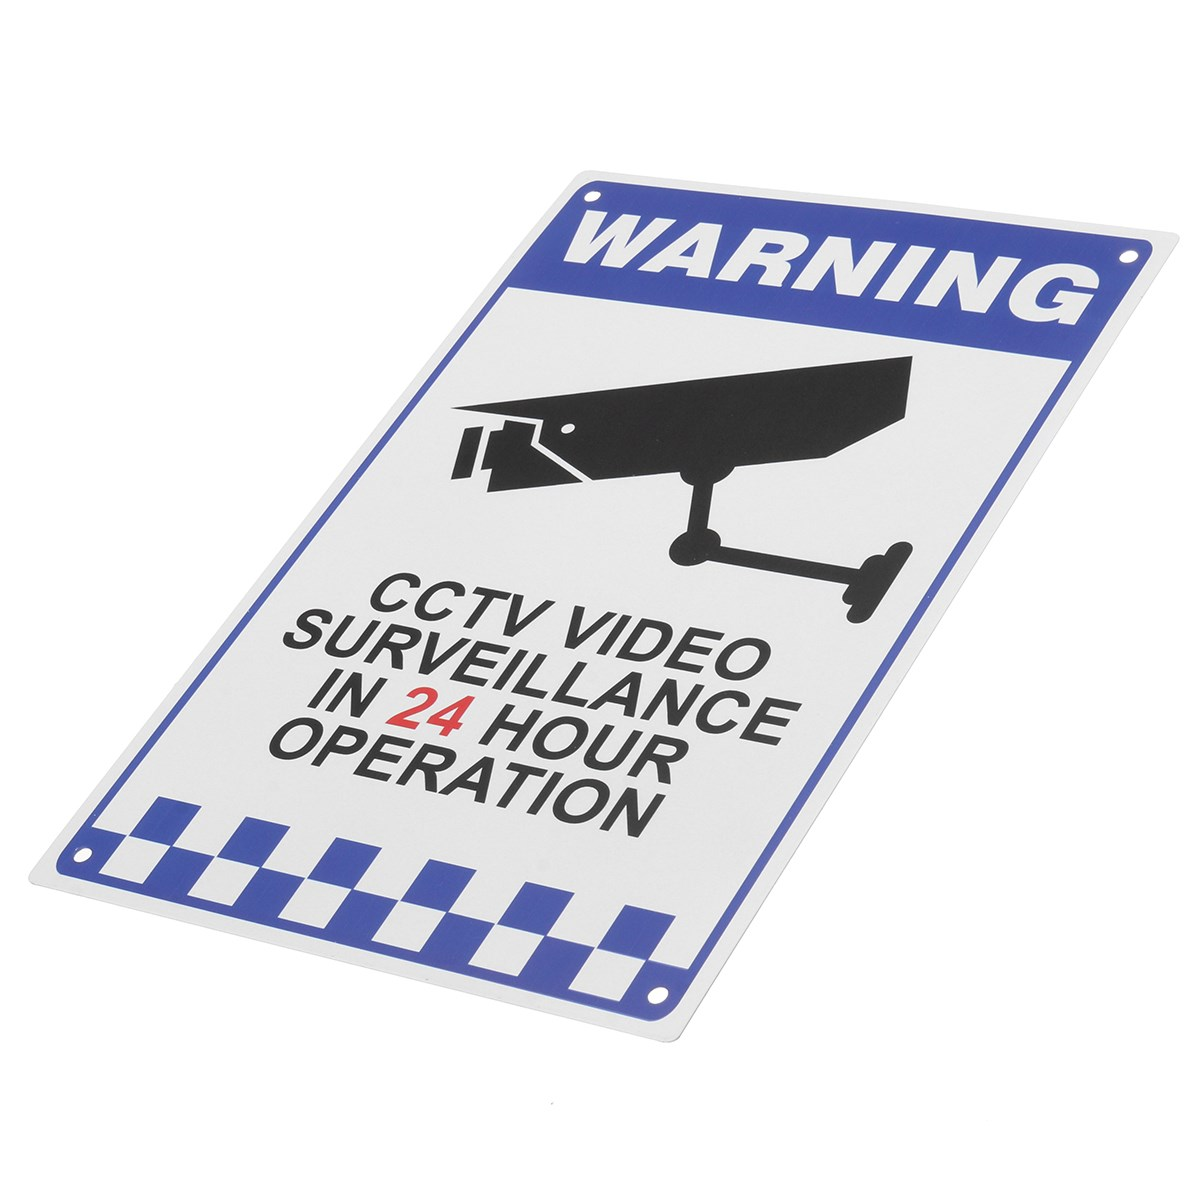 NEW CCTV Warning Security Video Surveillance Camera Safety Security Sign Reflactive Metal